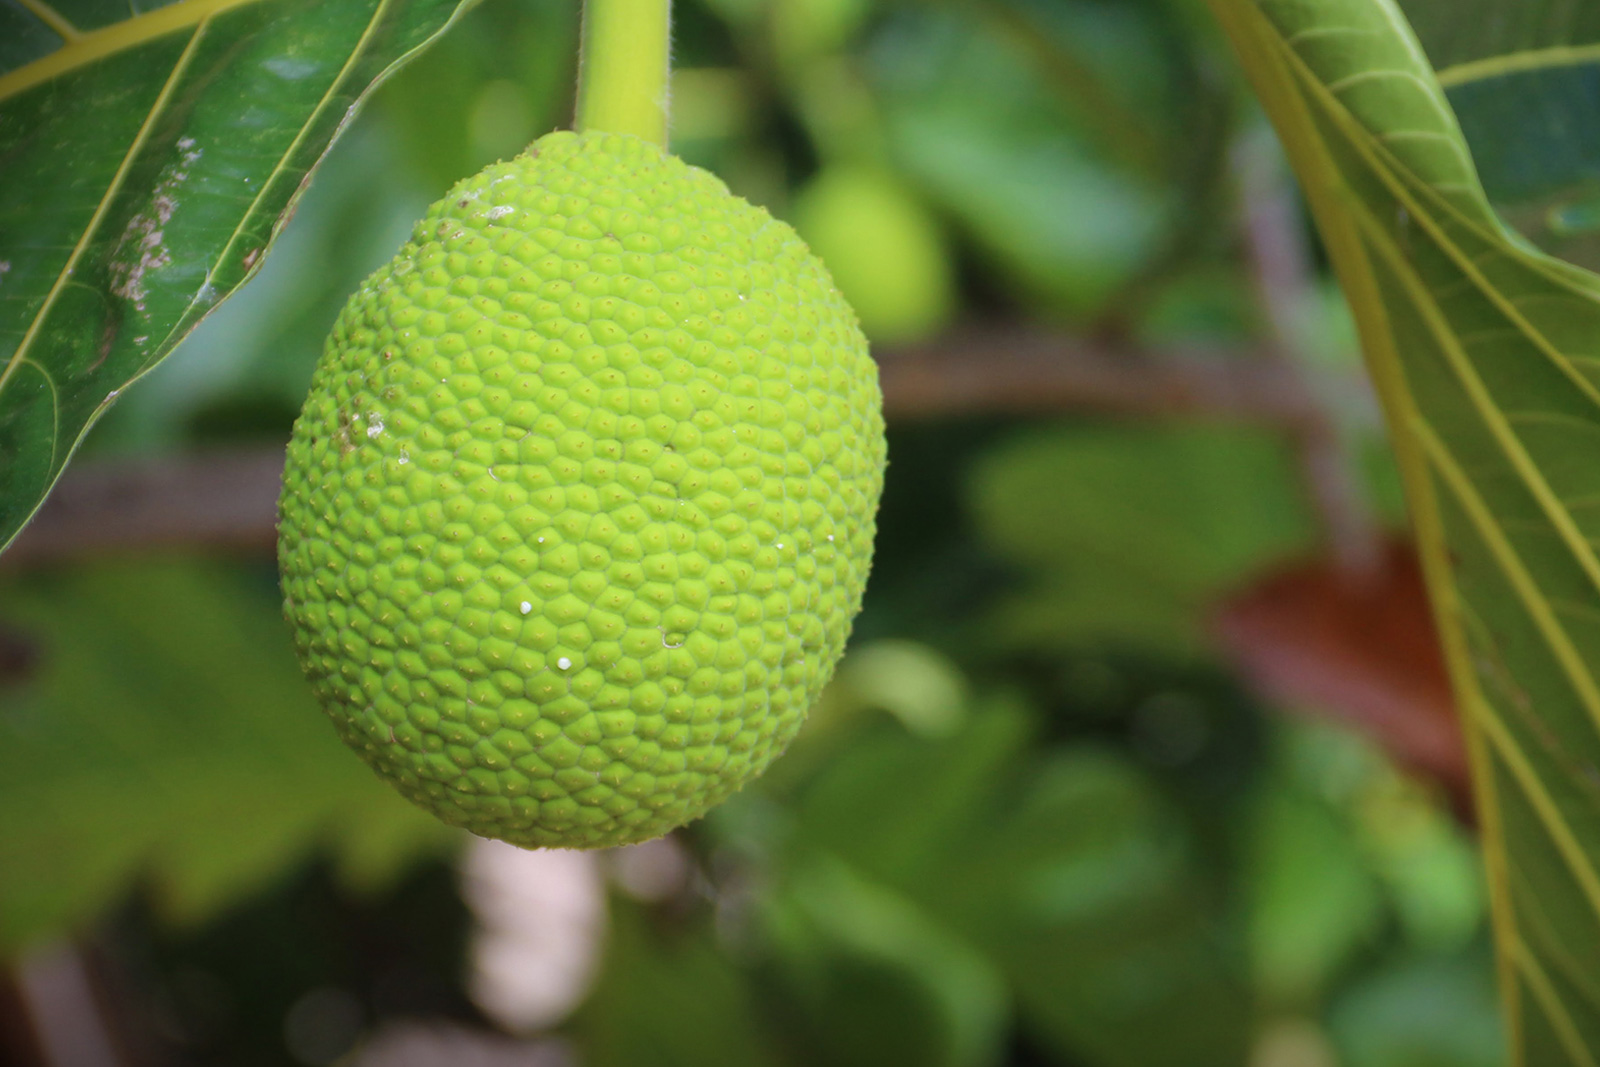 Image of a single breadfruit on the tree - commonly used in holistic applications.